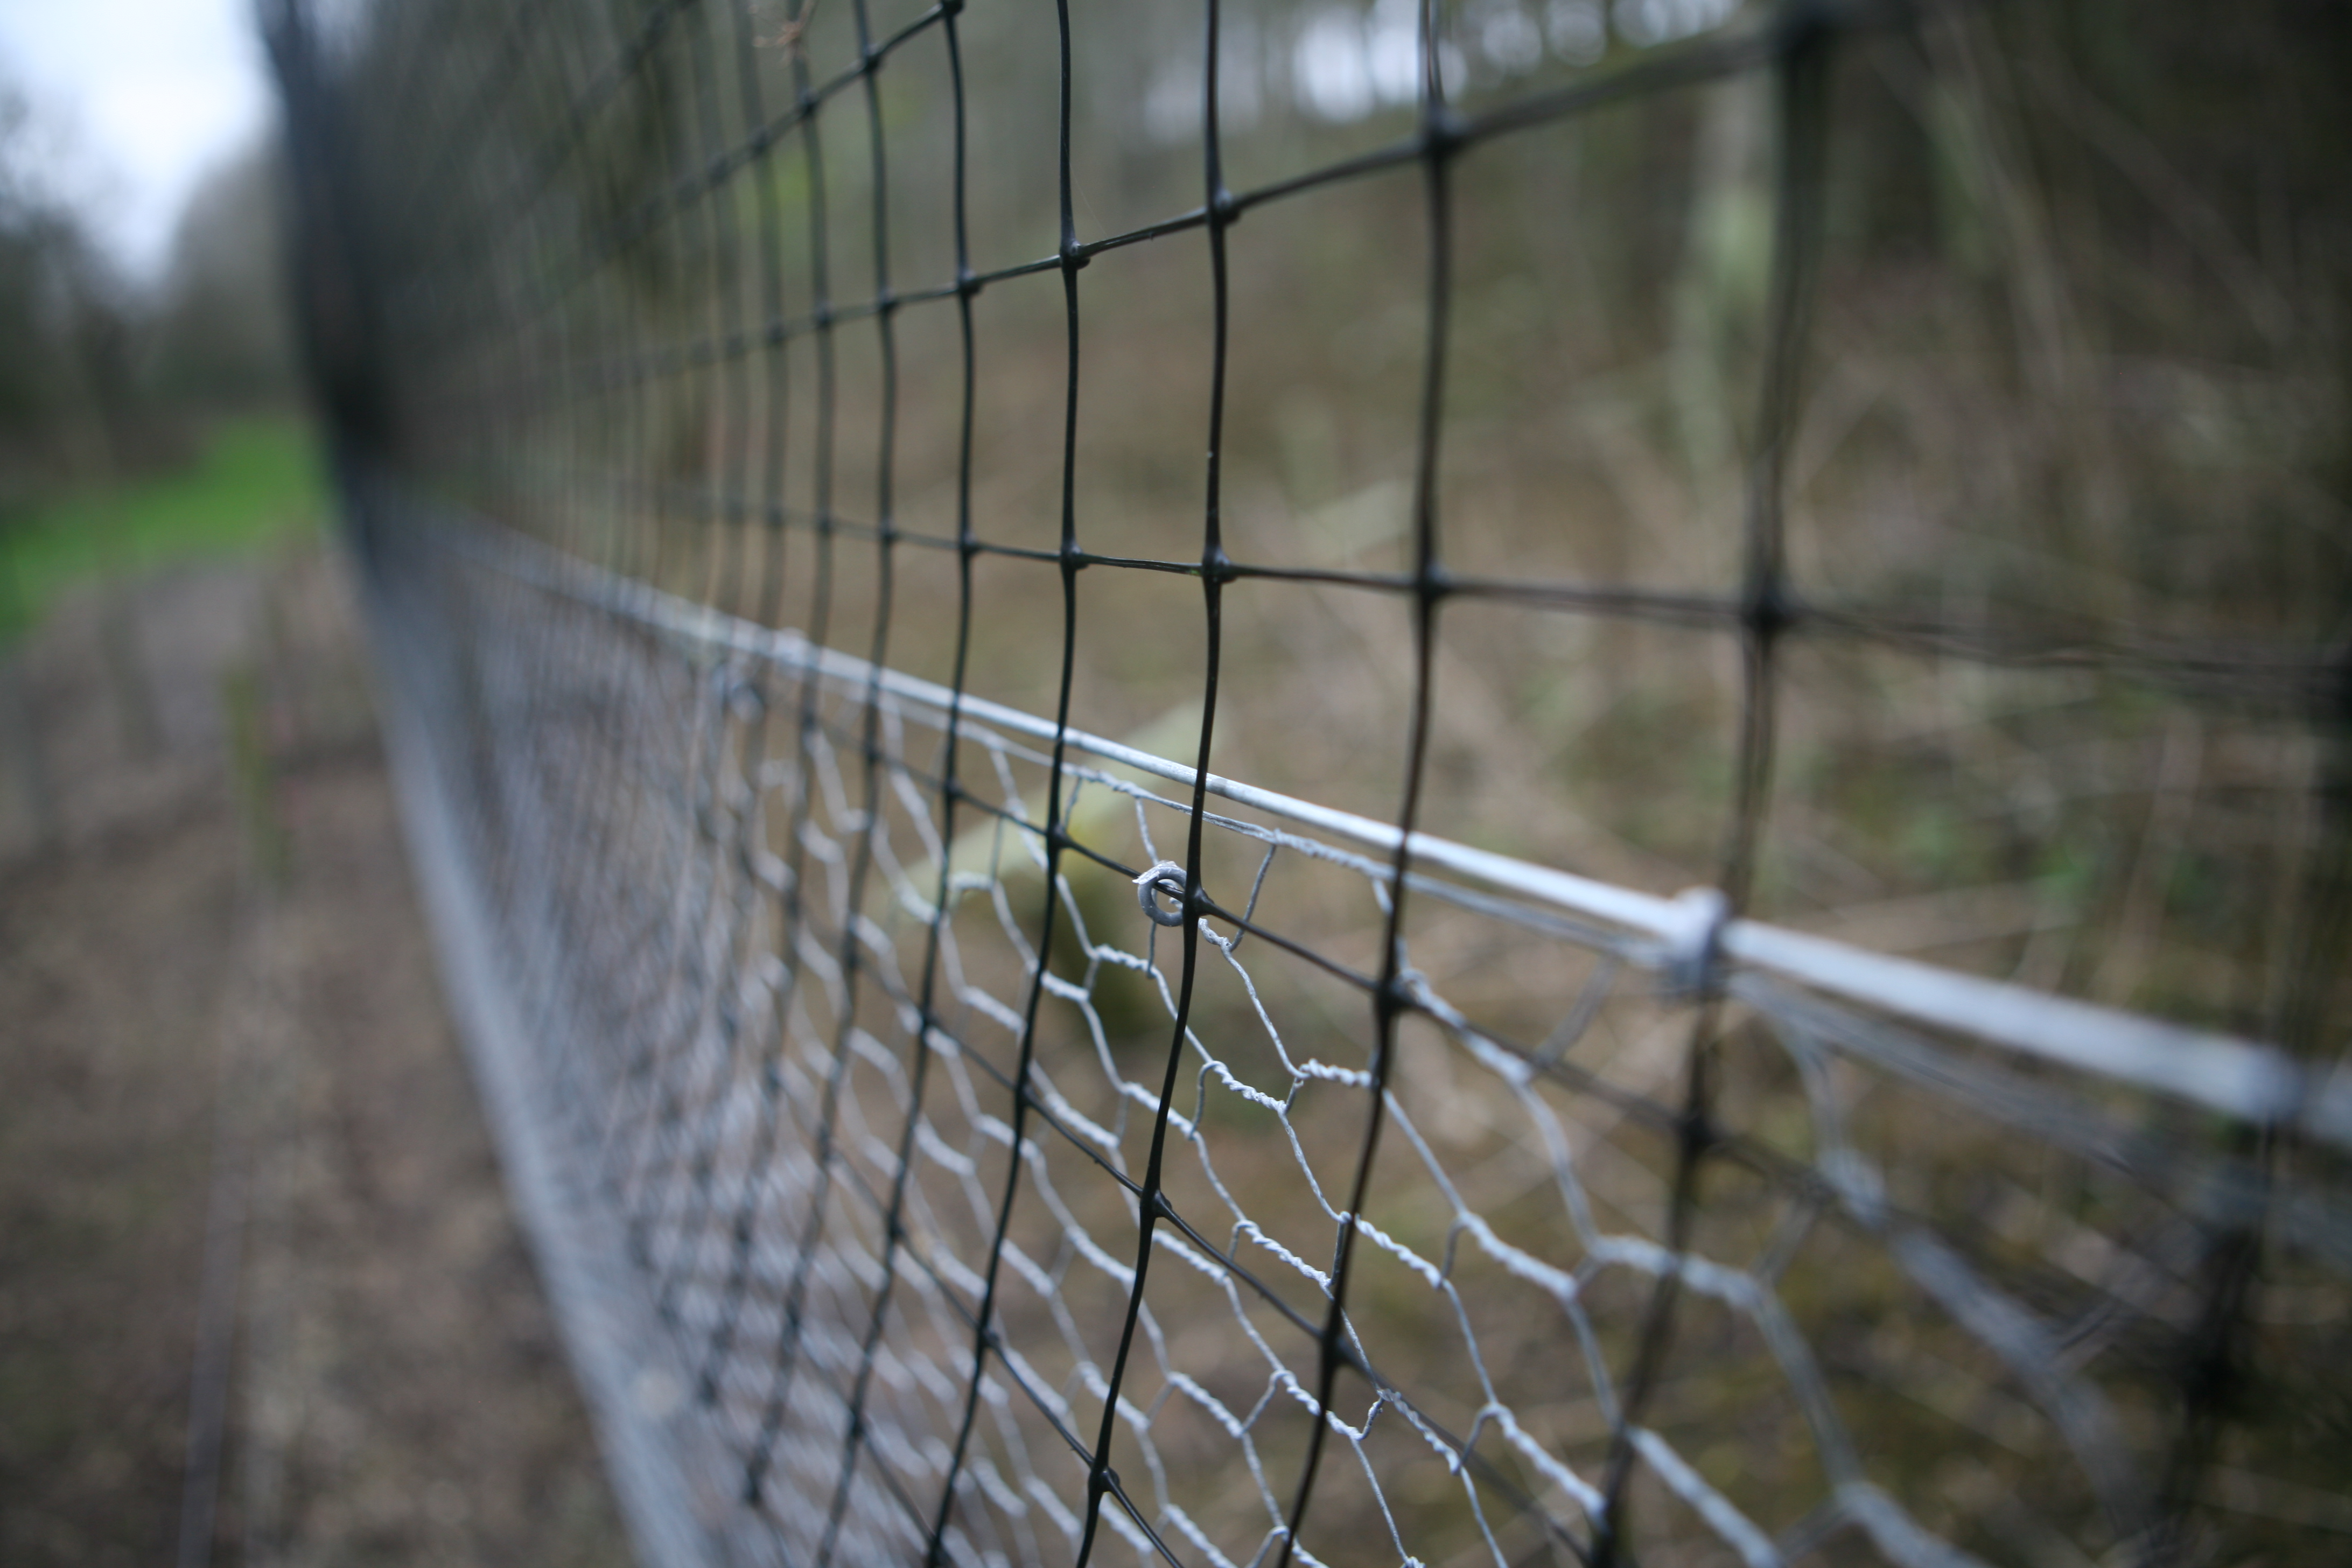 Release pen netting for game bird rearing